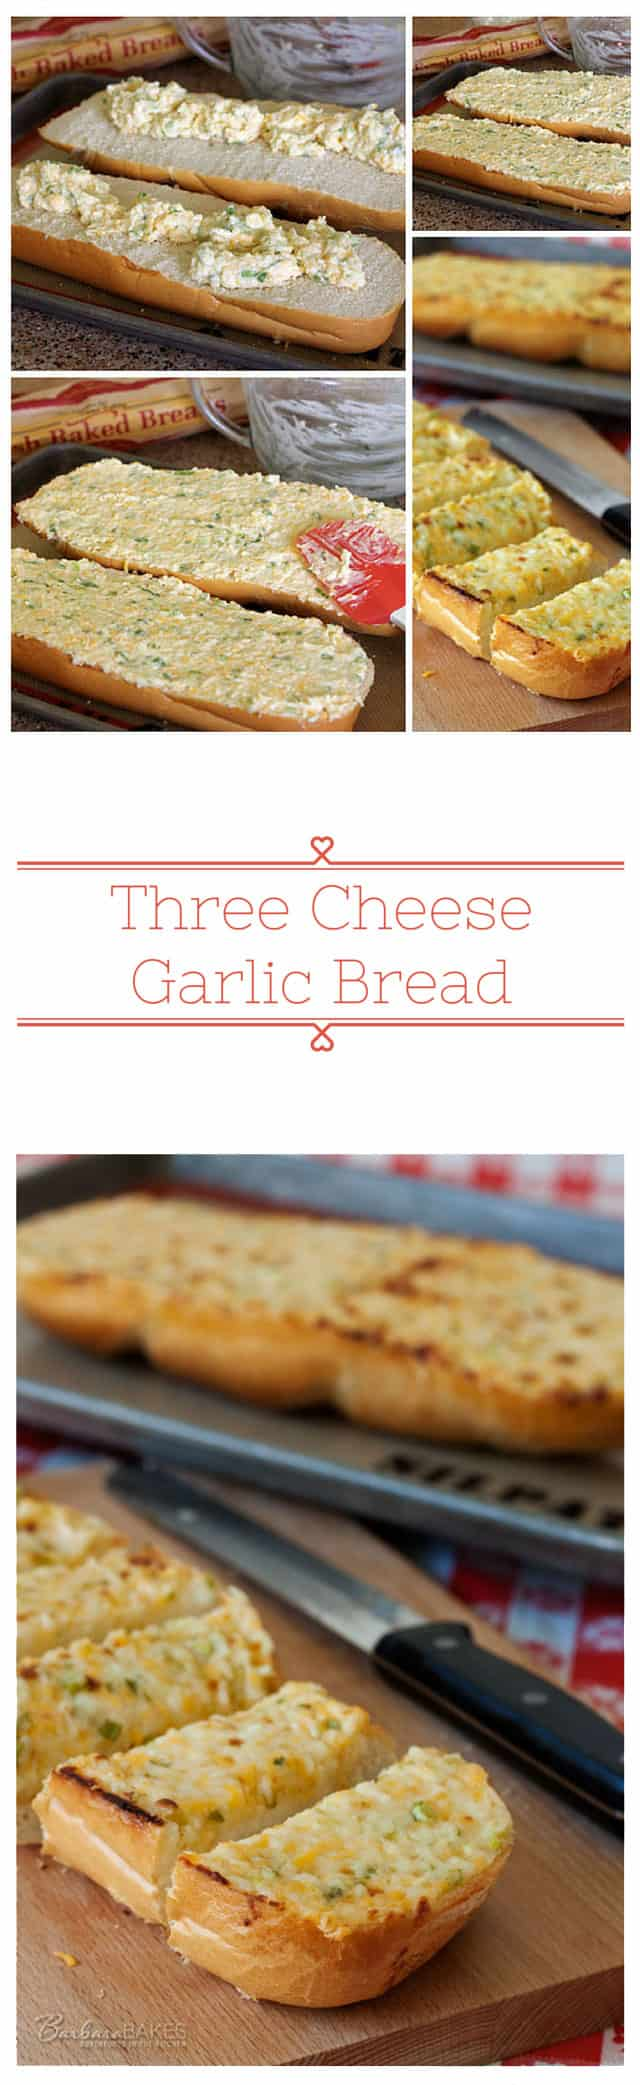 Three-Cheese-Garlic-Bread-Collage